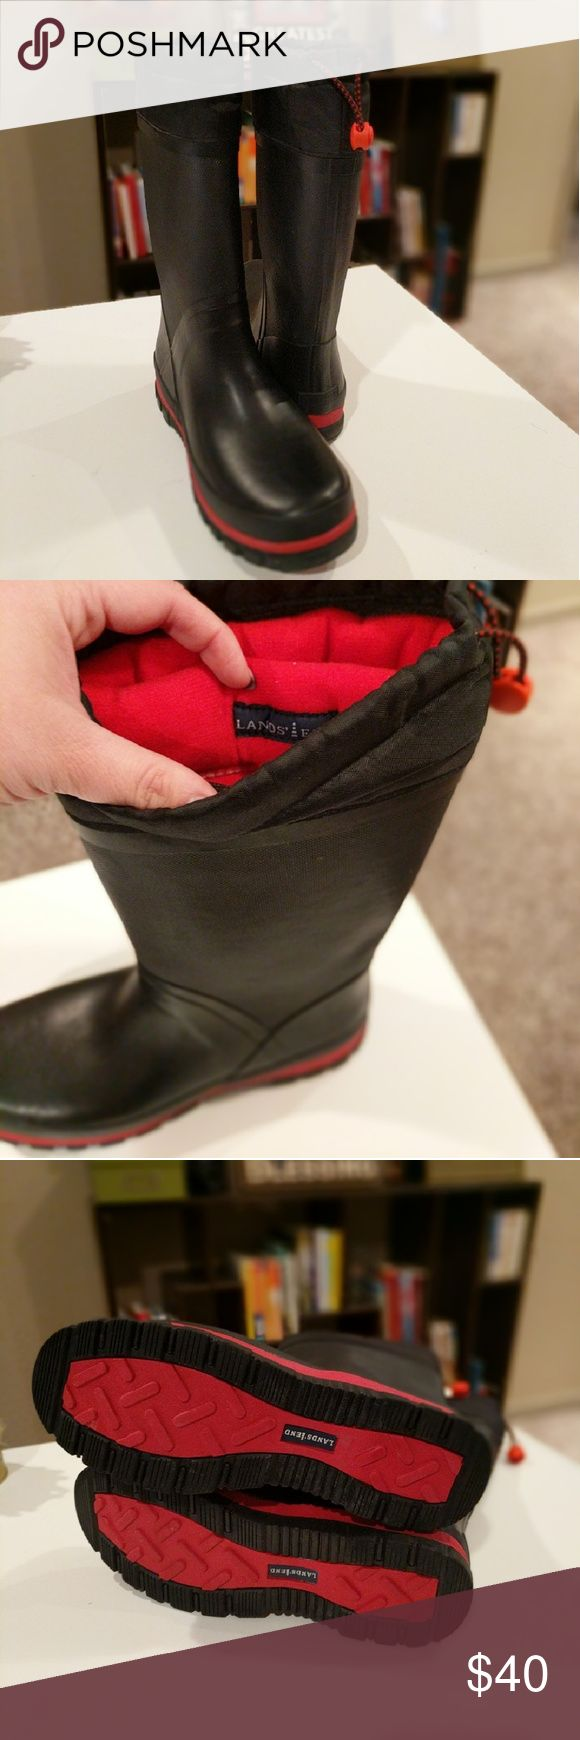 Land's End Insulated Rubber Boots Wonderful condition. Black Land's End insulated rubber boots with red accents. A bit of wear on toe where the red shows (last photo shows). Size 10. Lands' End Shoes Winter & Rain Boots